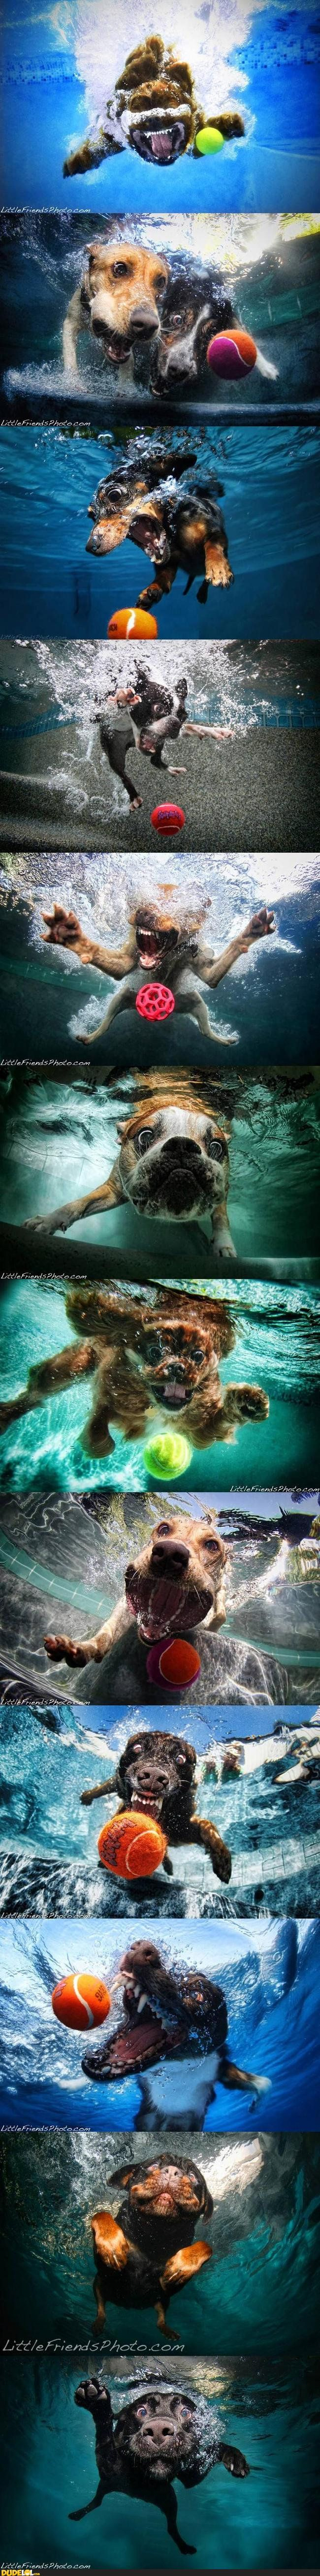 diving dog pictures: Funny Dogs, Dogs Photography, Diving Animal, Diving Underwater, Dogs Diving, Diving Dogs, Underwater Dogs, Photography Water, Dogs Pictures